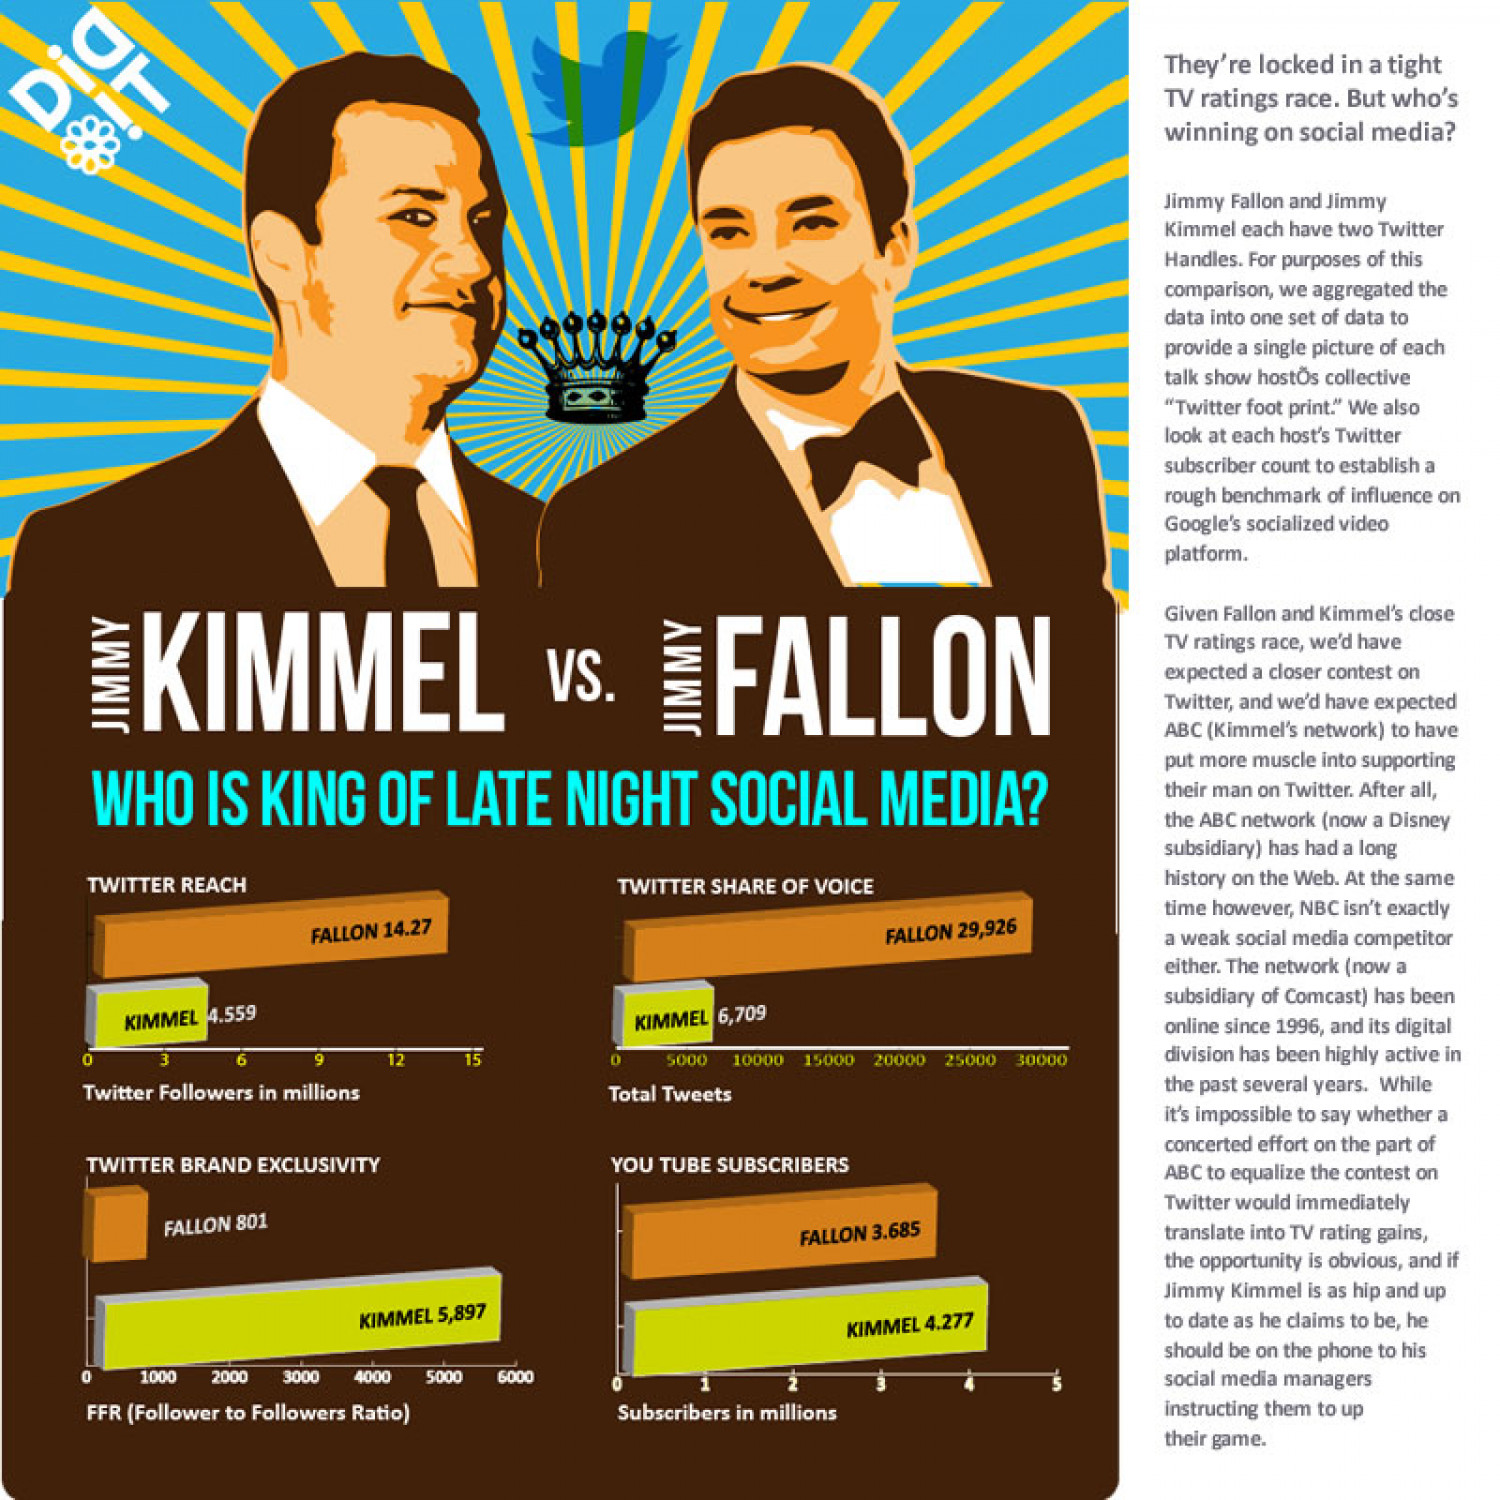 Jimmy Kimmel vs. Jimmy Fallon Infographic